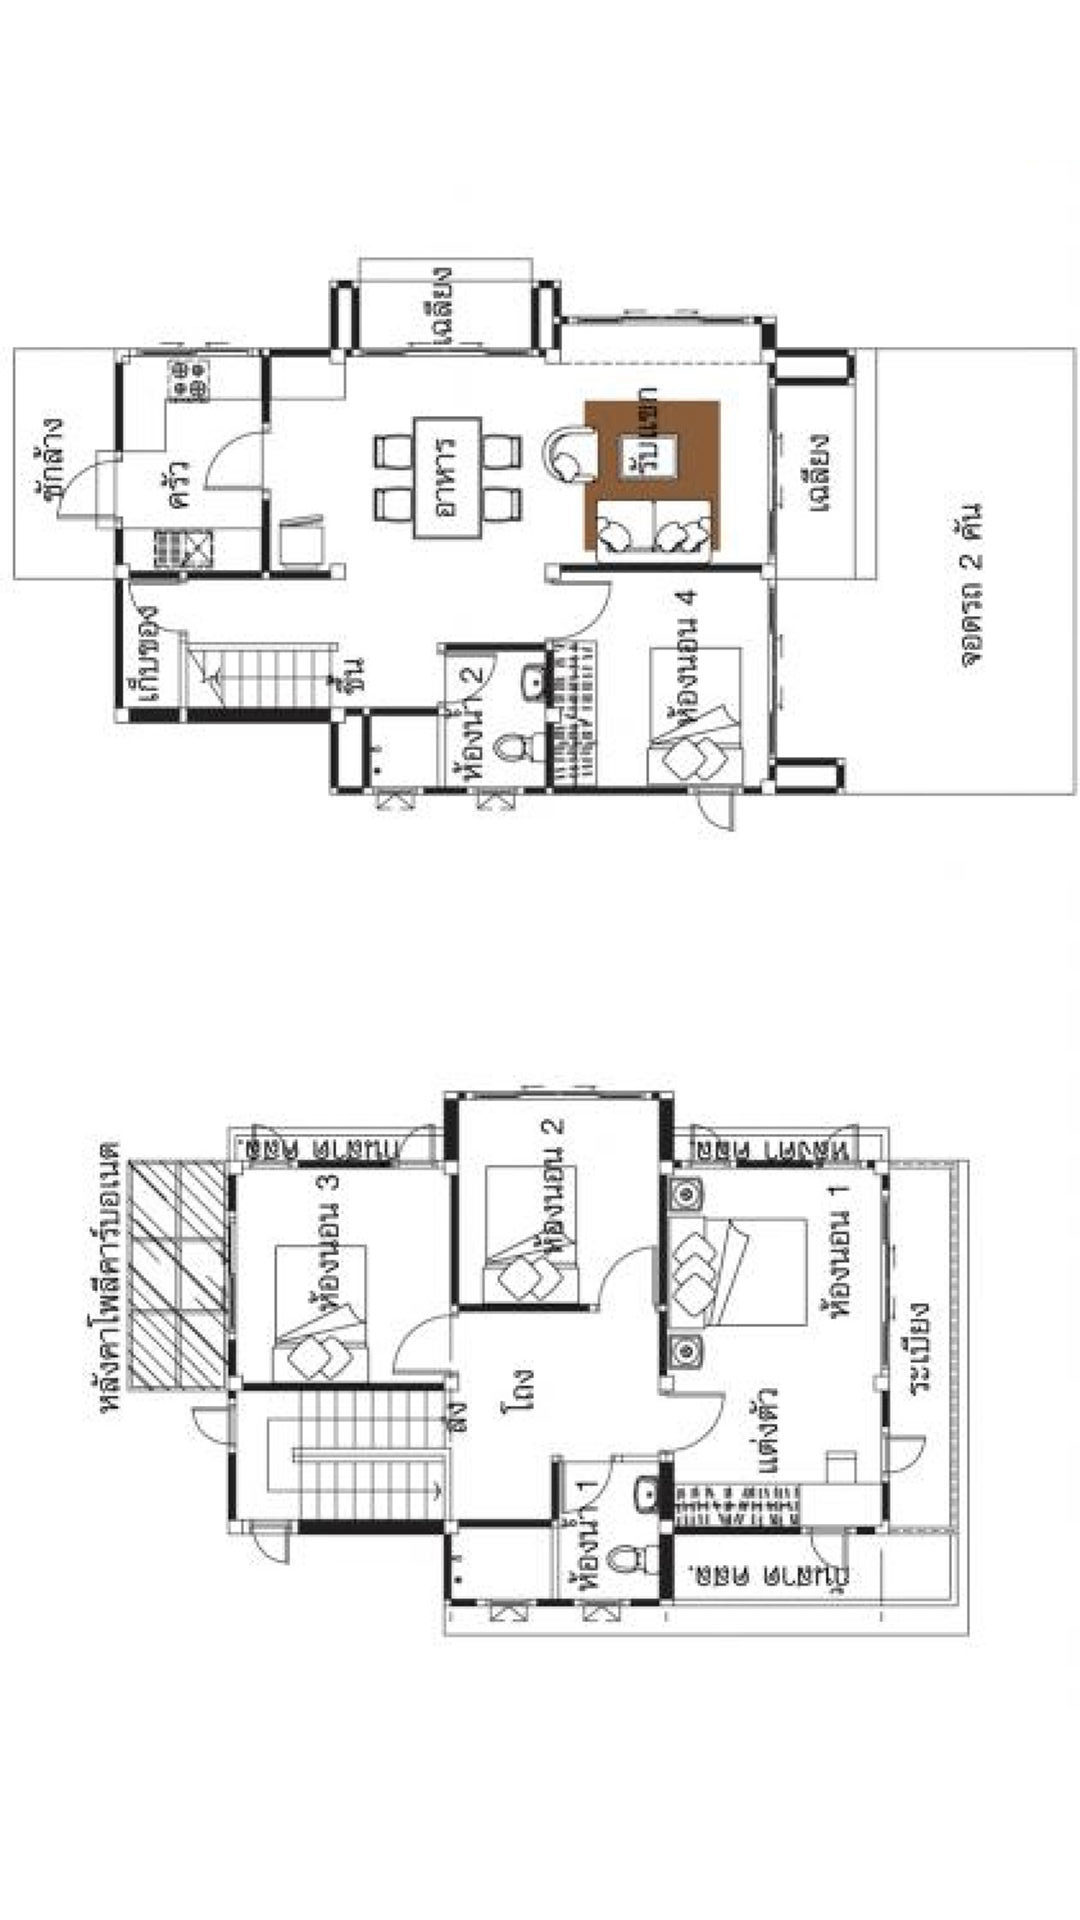 Small Home Plans 6x9m with 4 Bedrooms - House Plans 3D